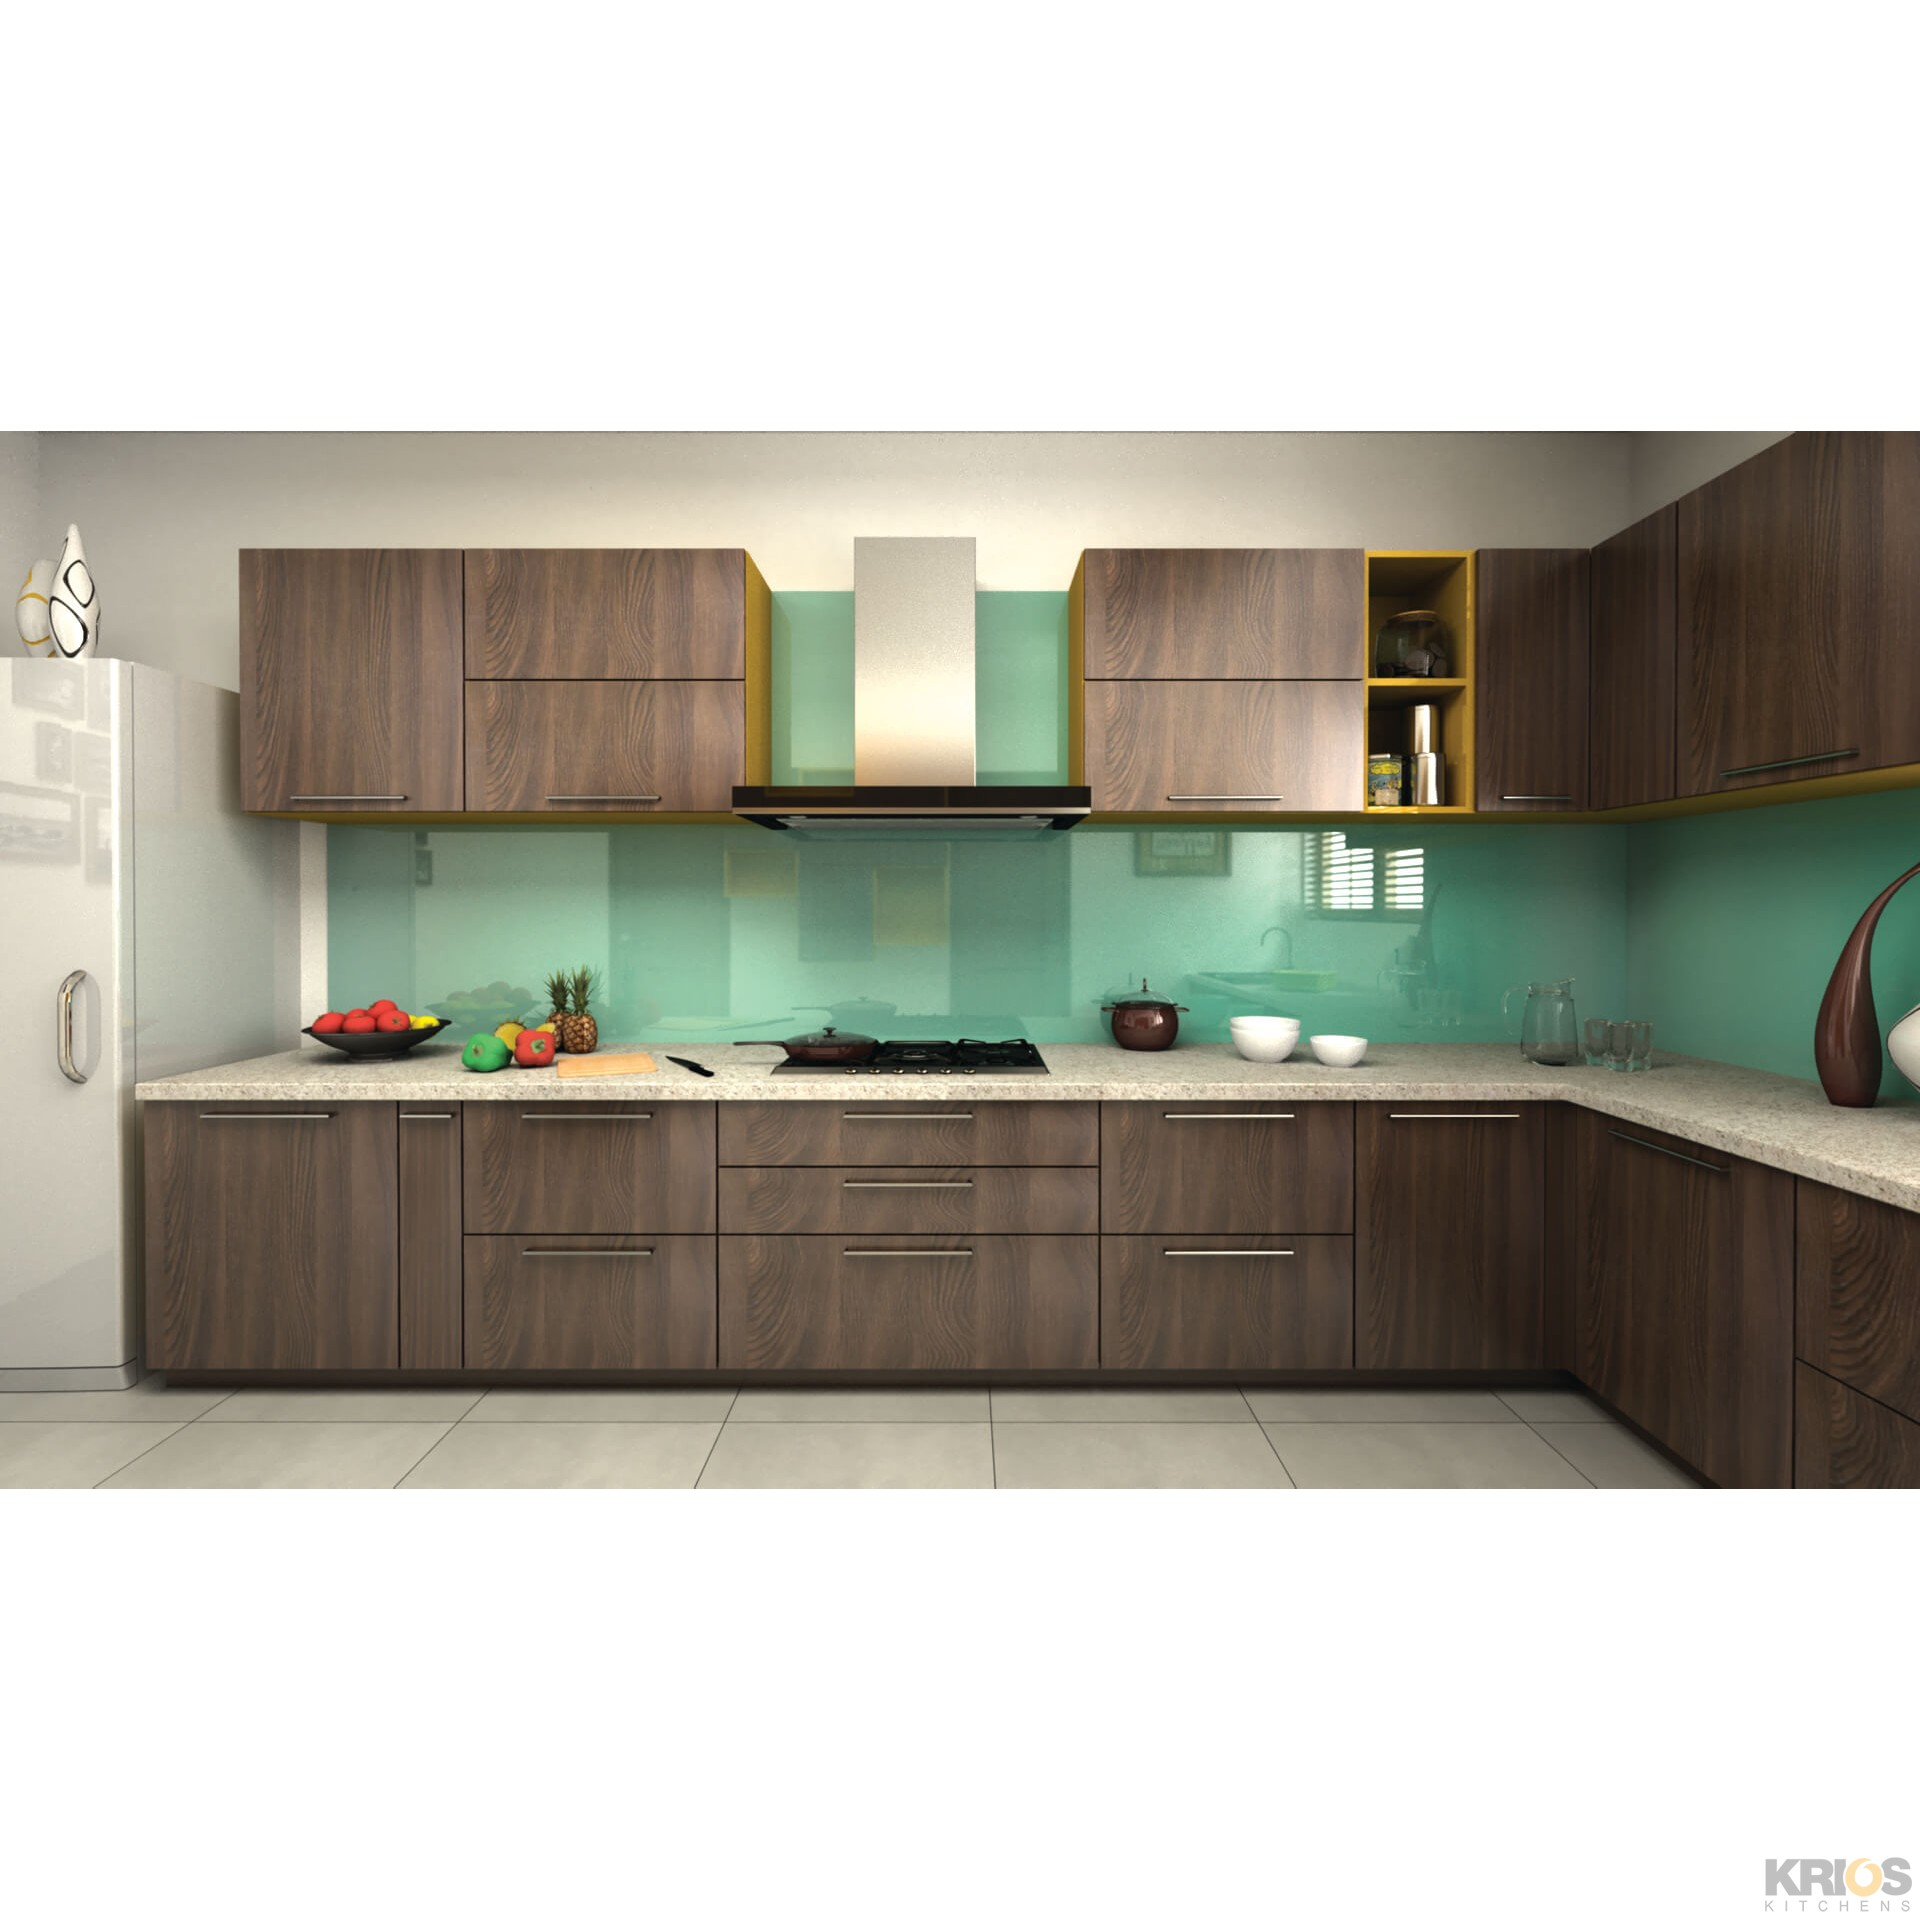 Straight L Shaped Kitchen Layout With Island For Hangover: Walcott Walnut